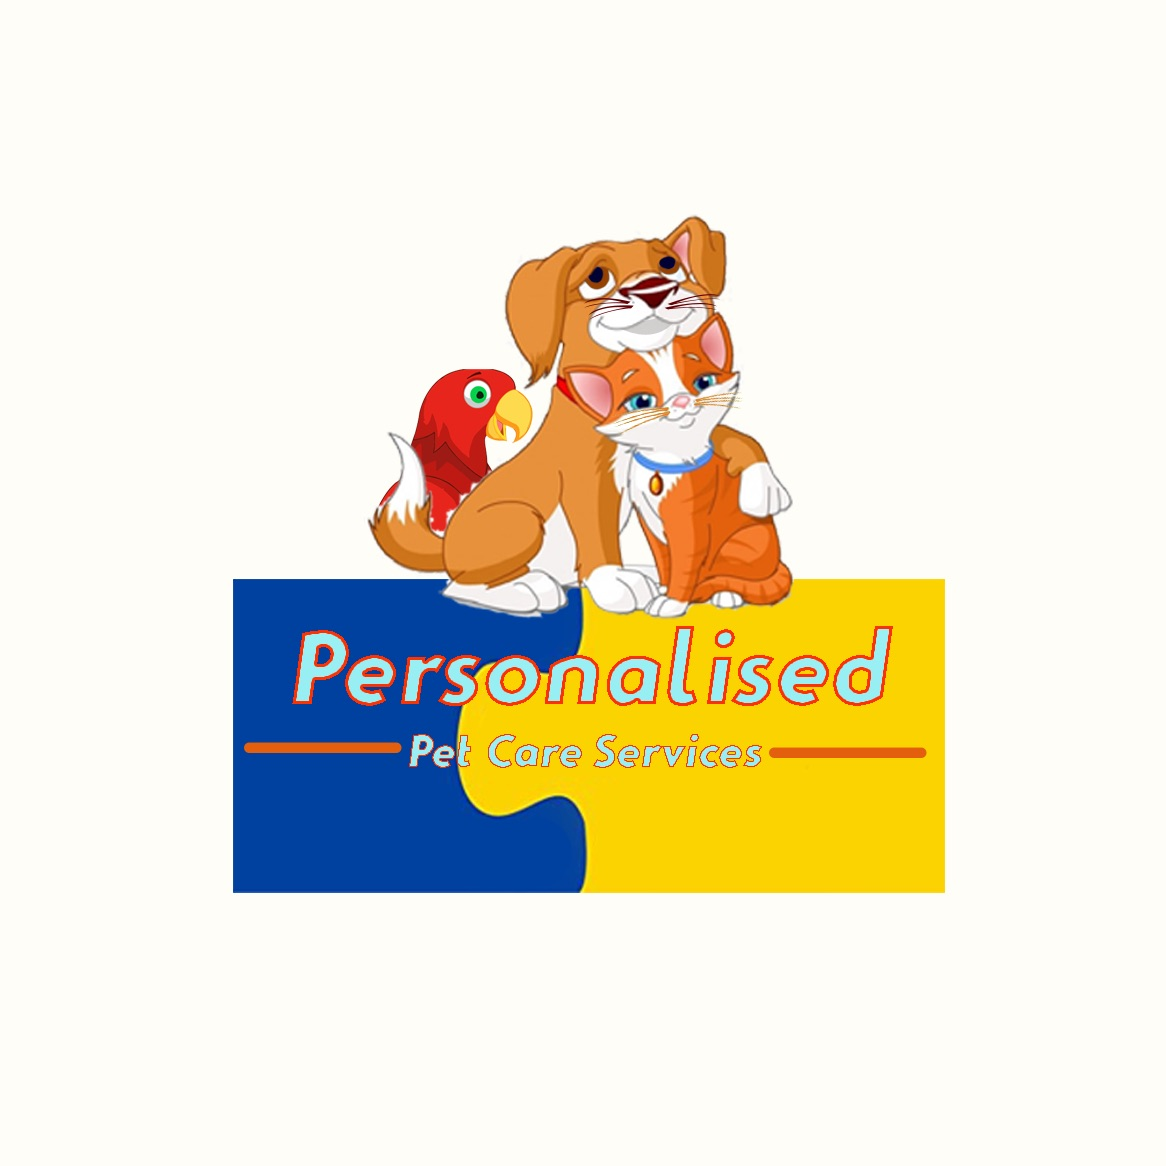 Personalised Pet Care Services